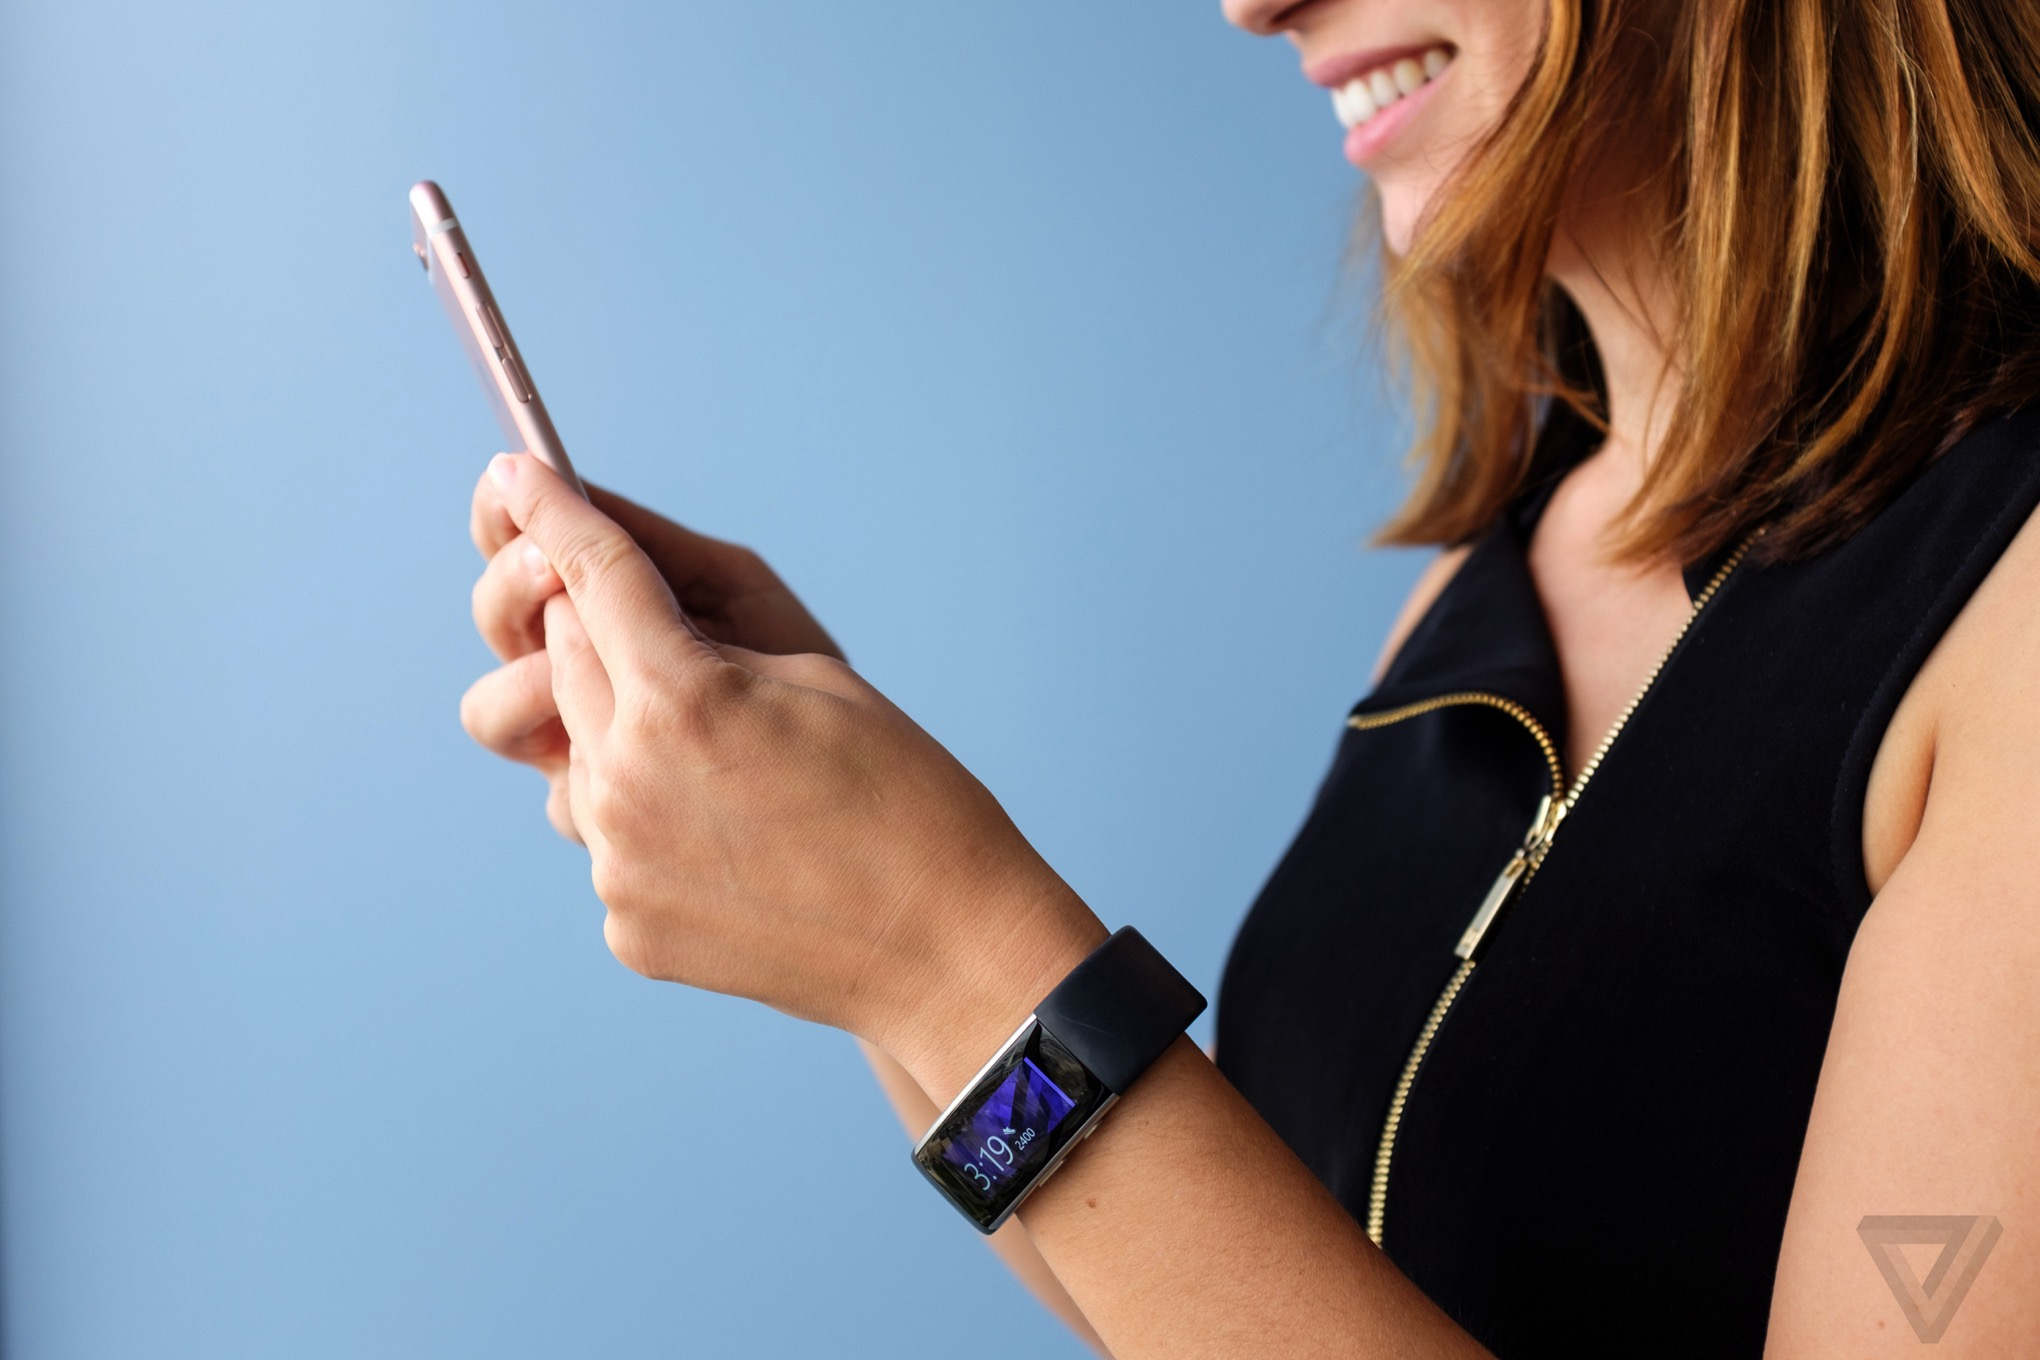 wrist-worn Band fitness tracker